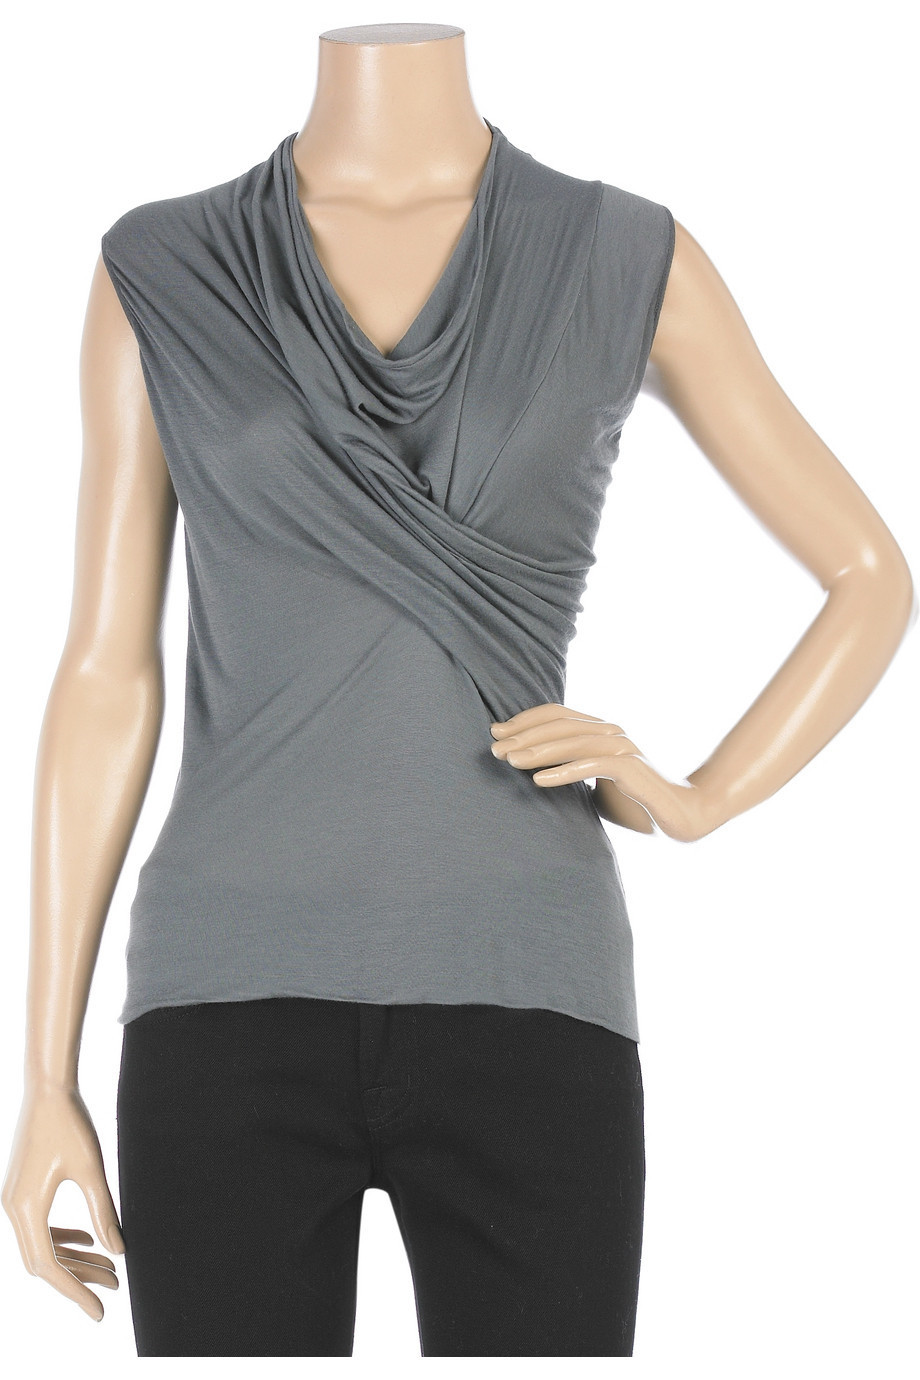 Rick Owens Lilies Twisted front top  | NET-A-PORTER.COM from net-a-porter.com